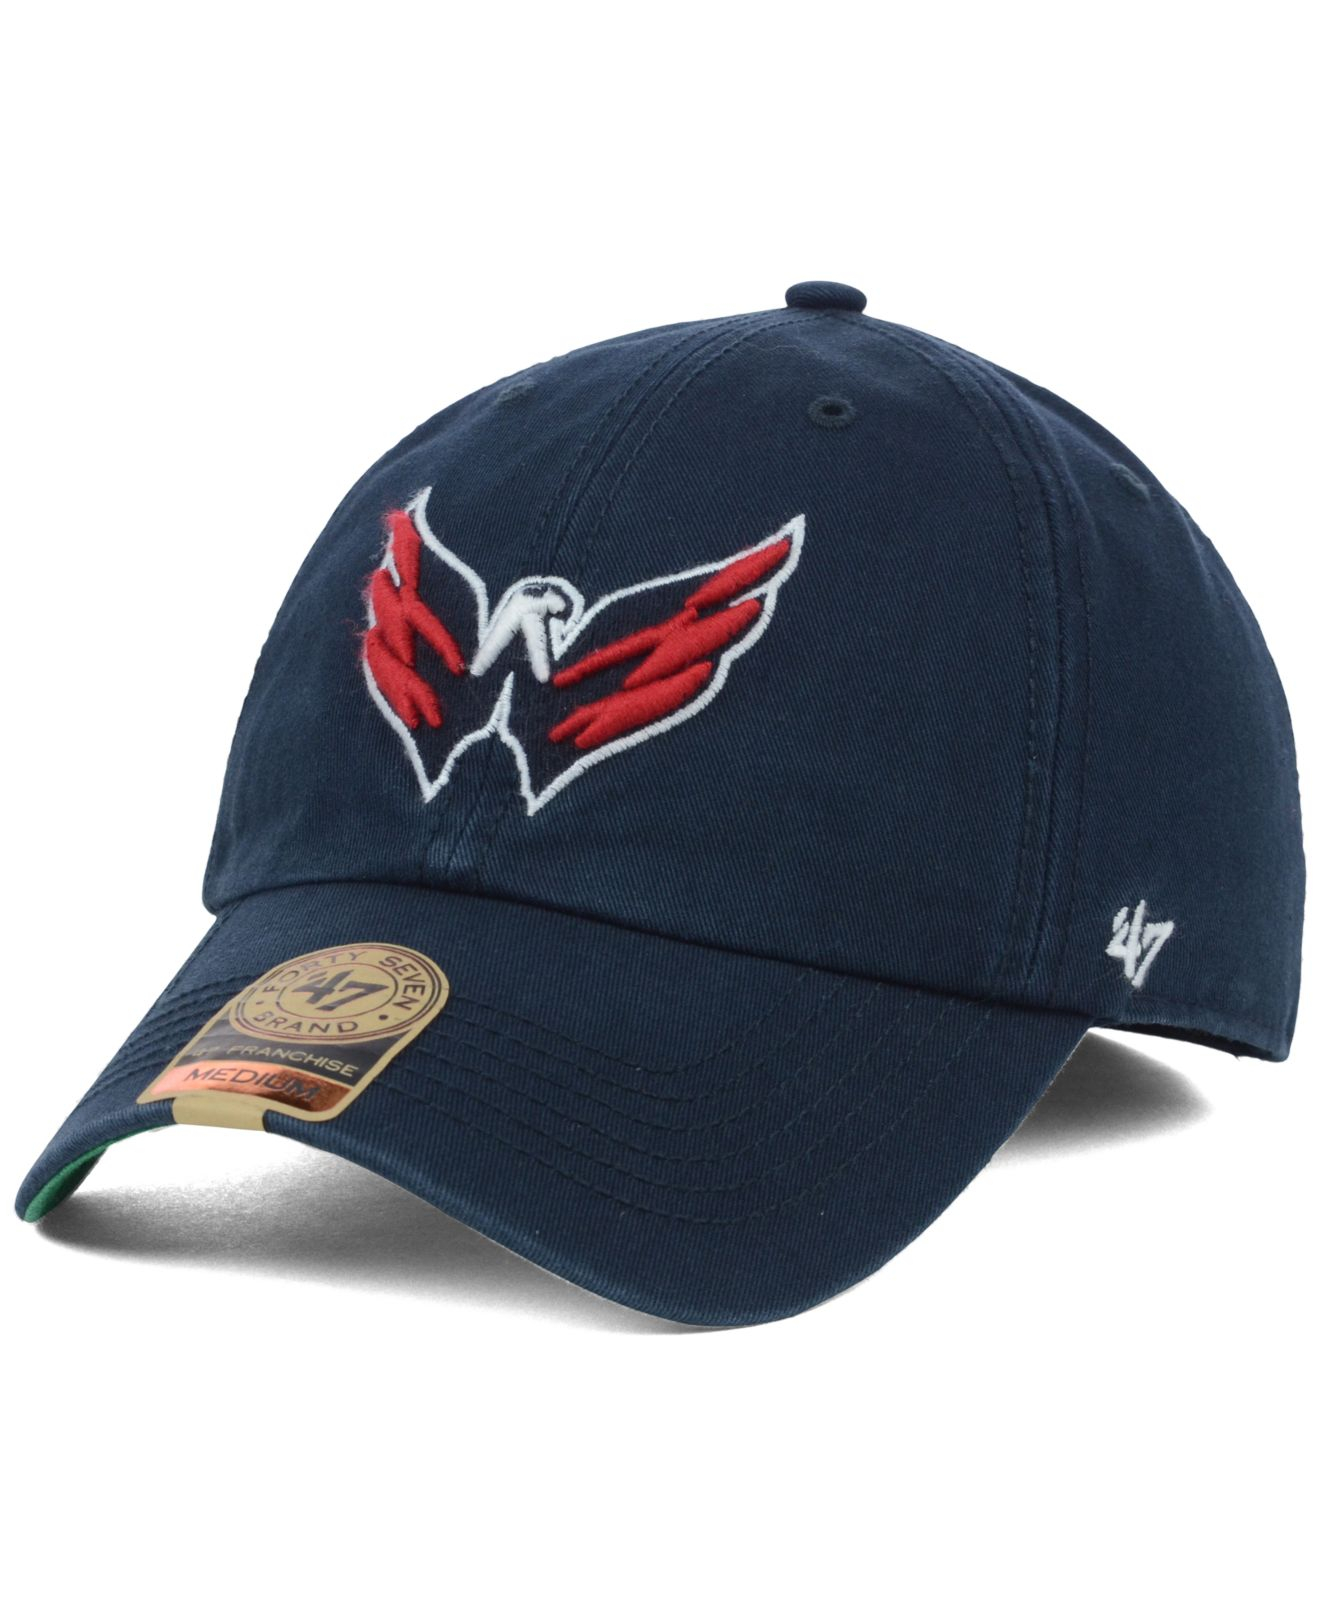 d792c6a8b8d ... cheap low cost lyst 47 brand washington capitals franchise cap in blue  for men 49783 49463